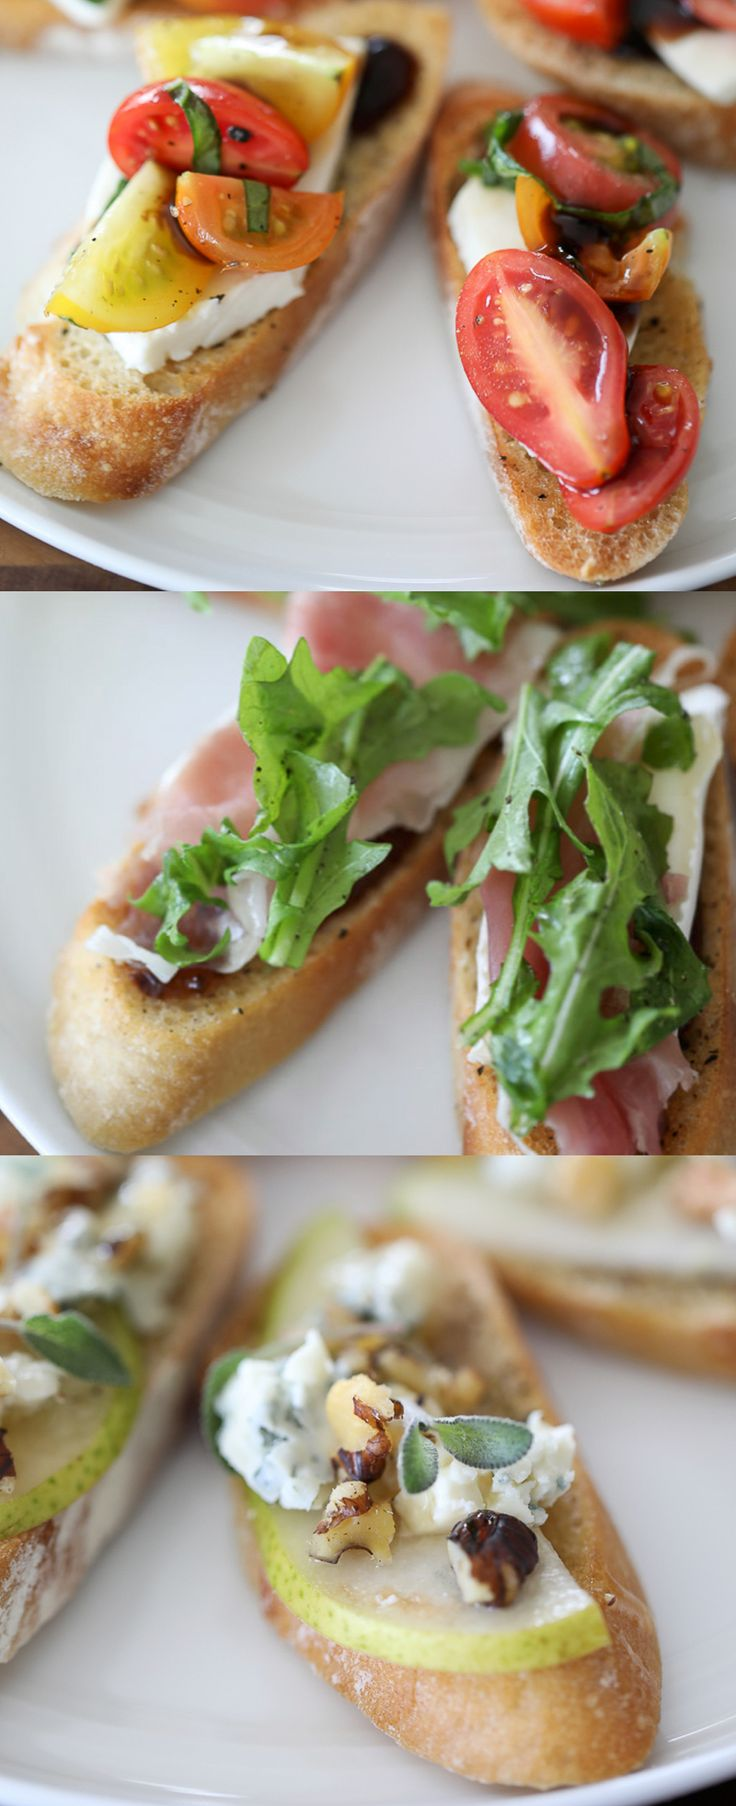 appetizer Crostini Recipes for Entertaining - #crostini #farmtotable #recipe #cheese #appetizer #vegetable